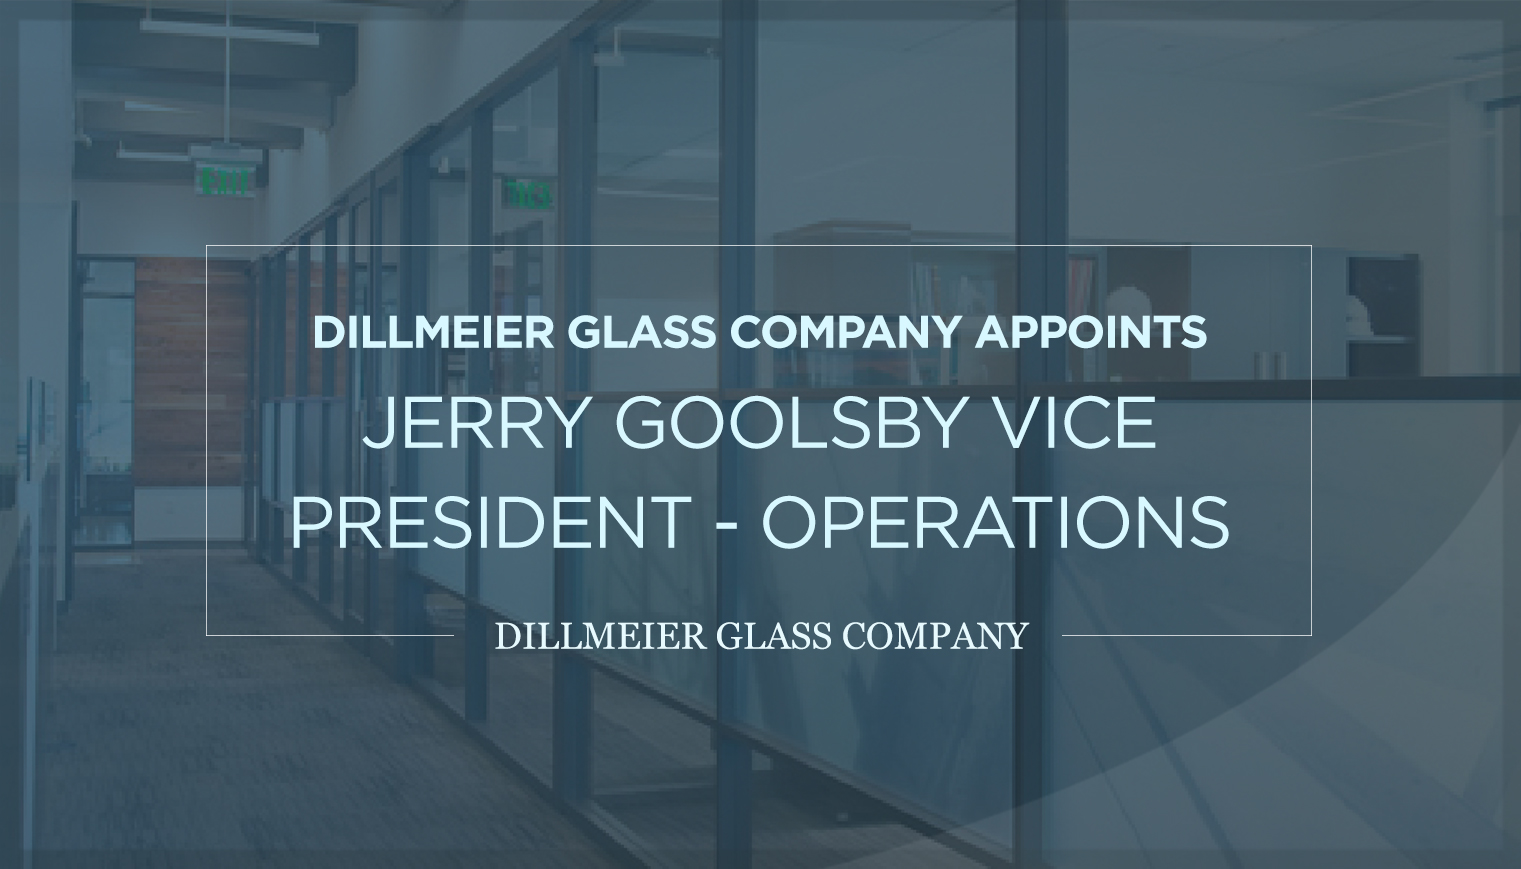 Dillmeier Glass Company Appoints Jerry Goolsby Vice President - Operations